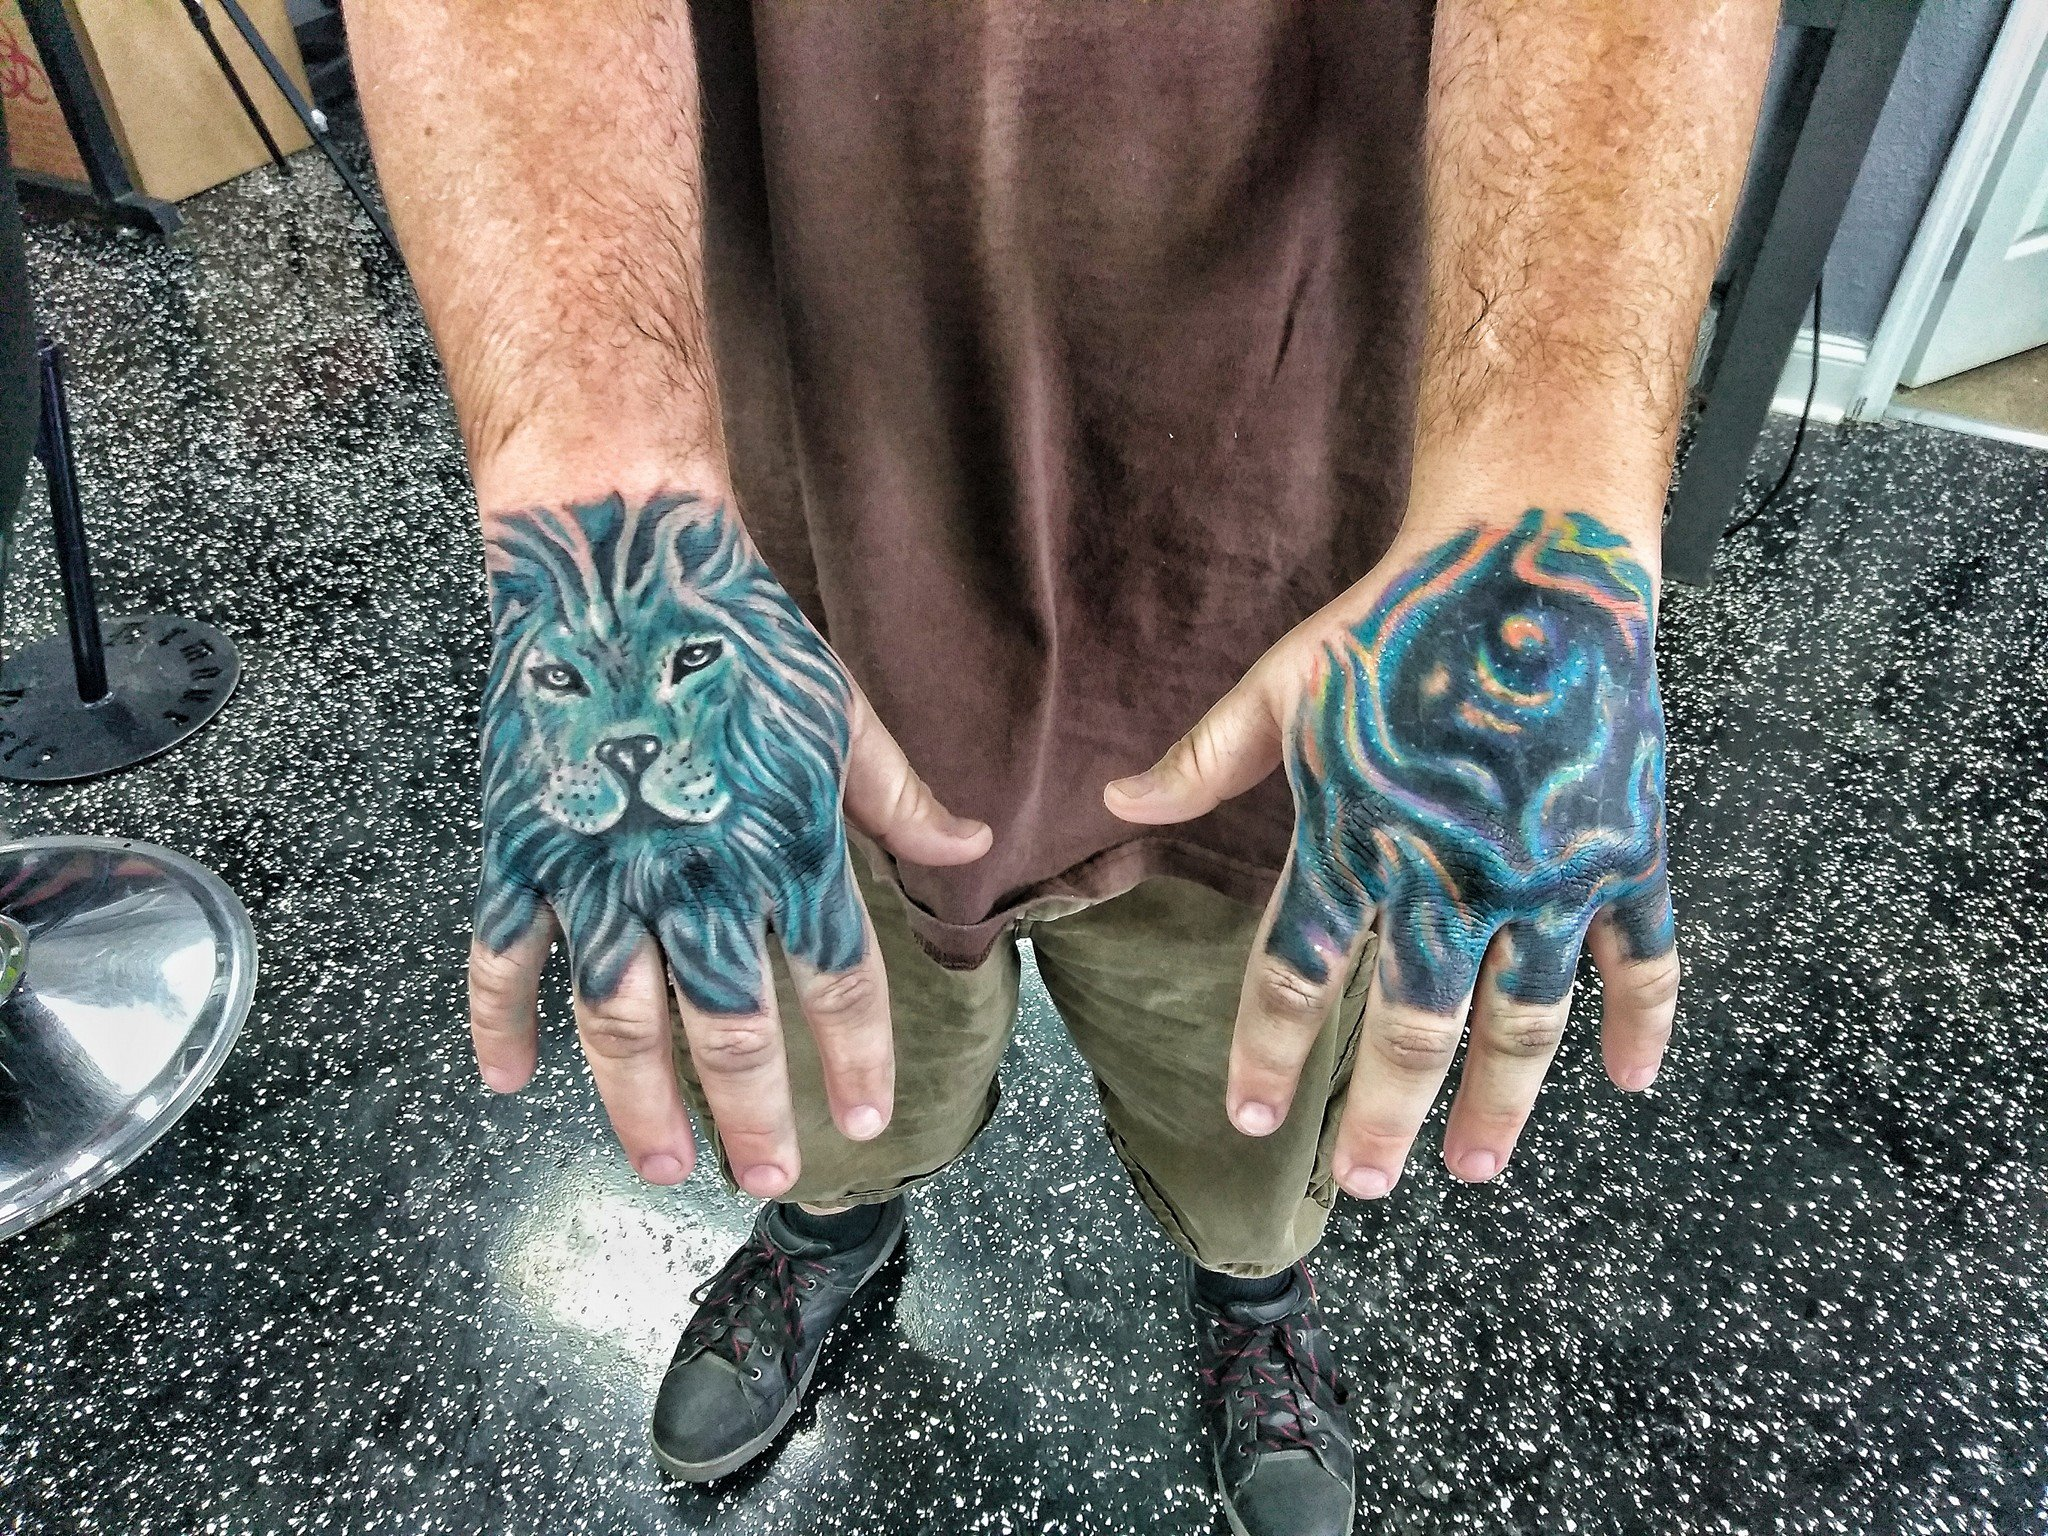 loyal 2 the coil tattoos 12 Becker Dr Unit A, North Fort Myers, FL ...